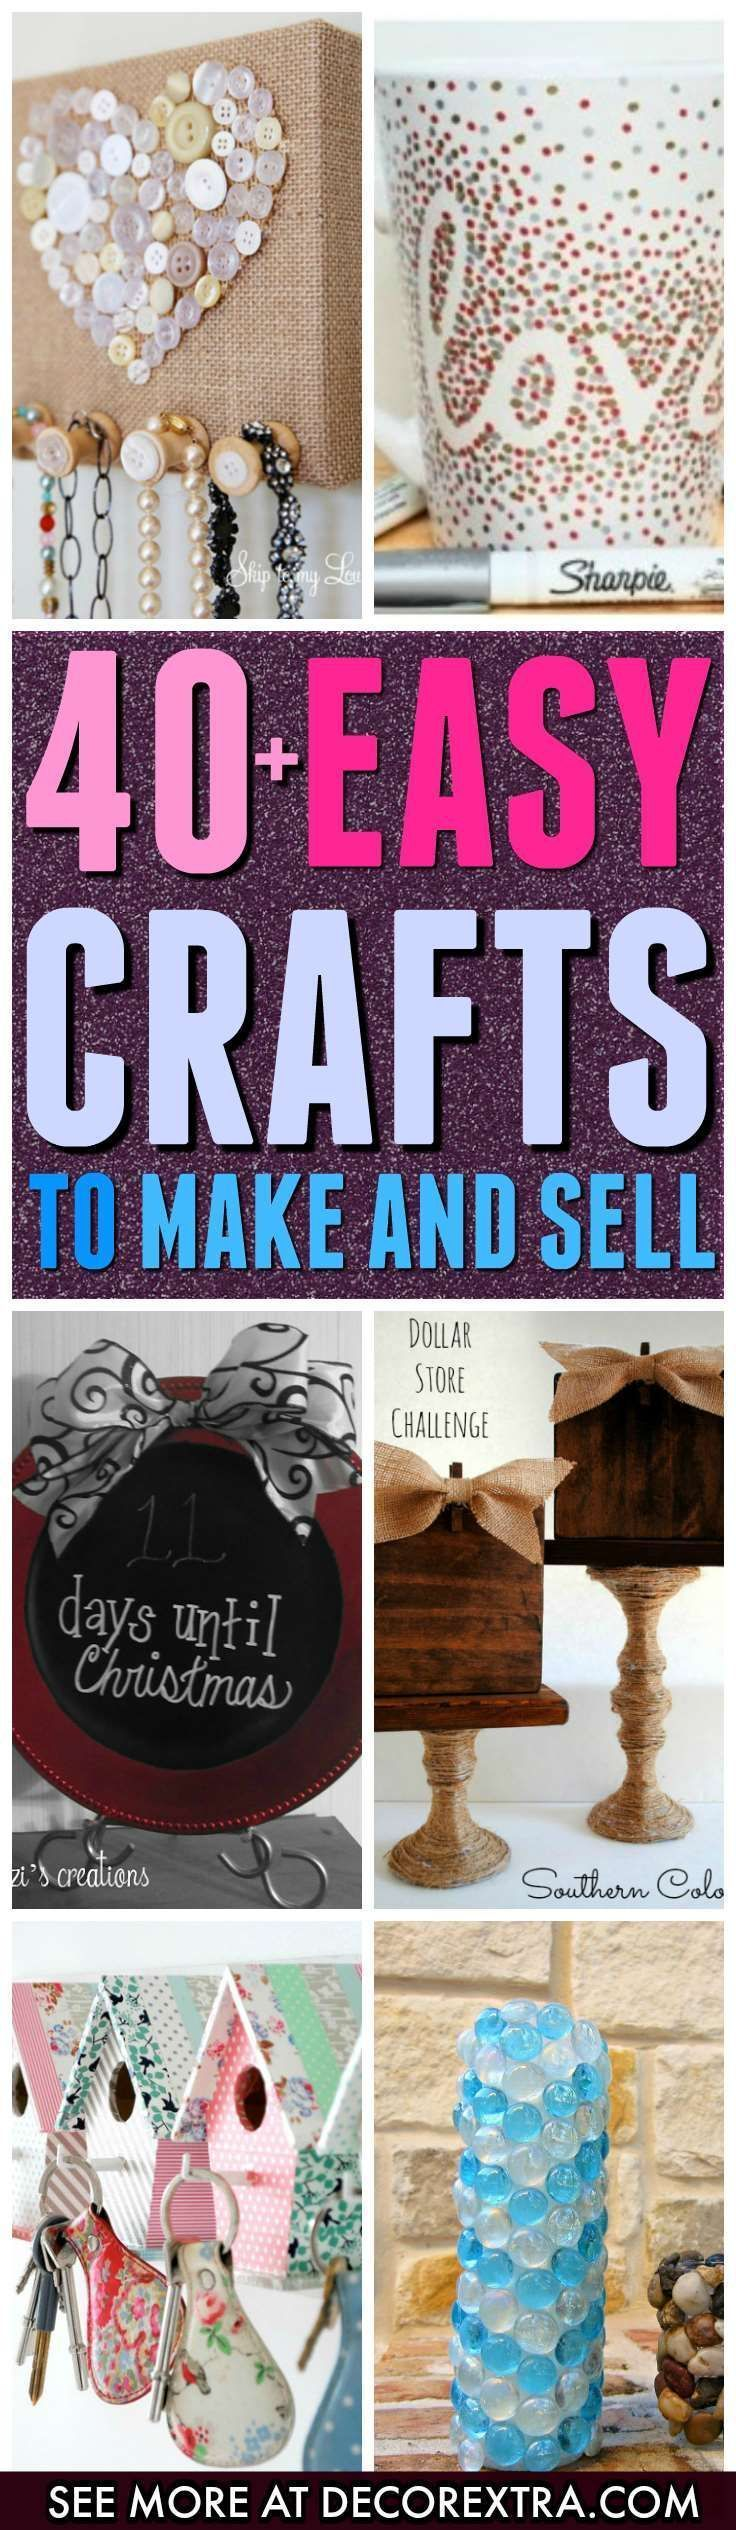 Crafts To Make And Sell Easy Diy Ideas Crafts To Sell On